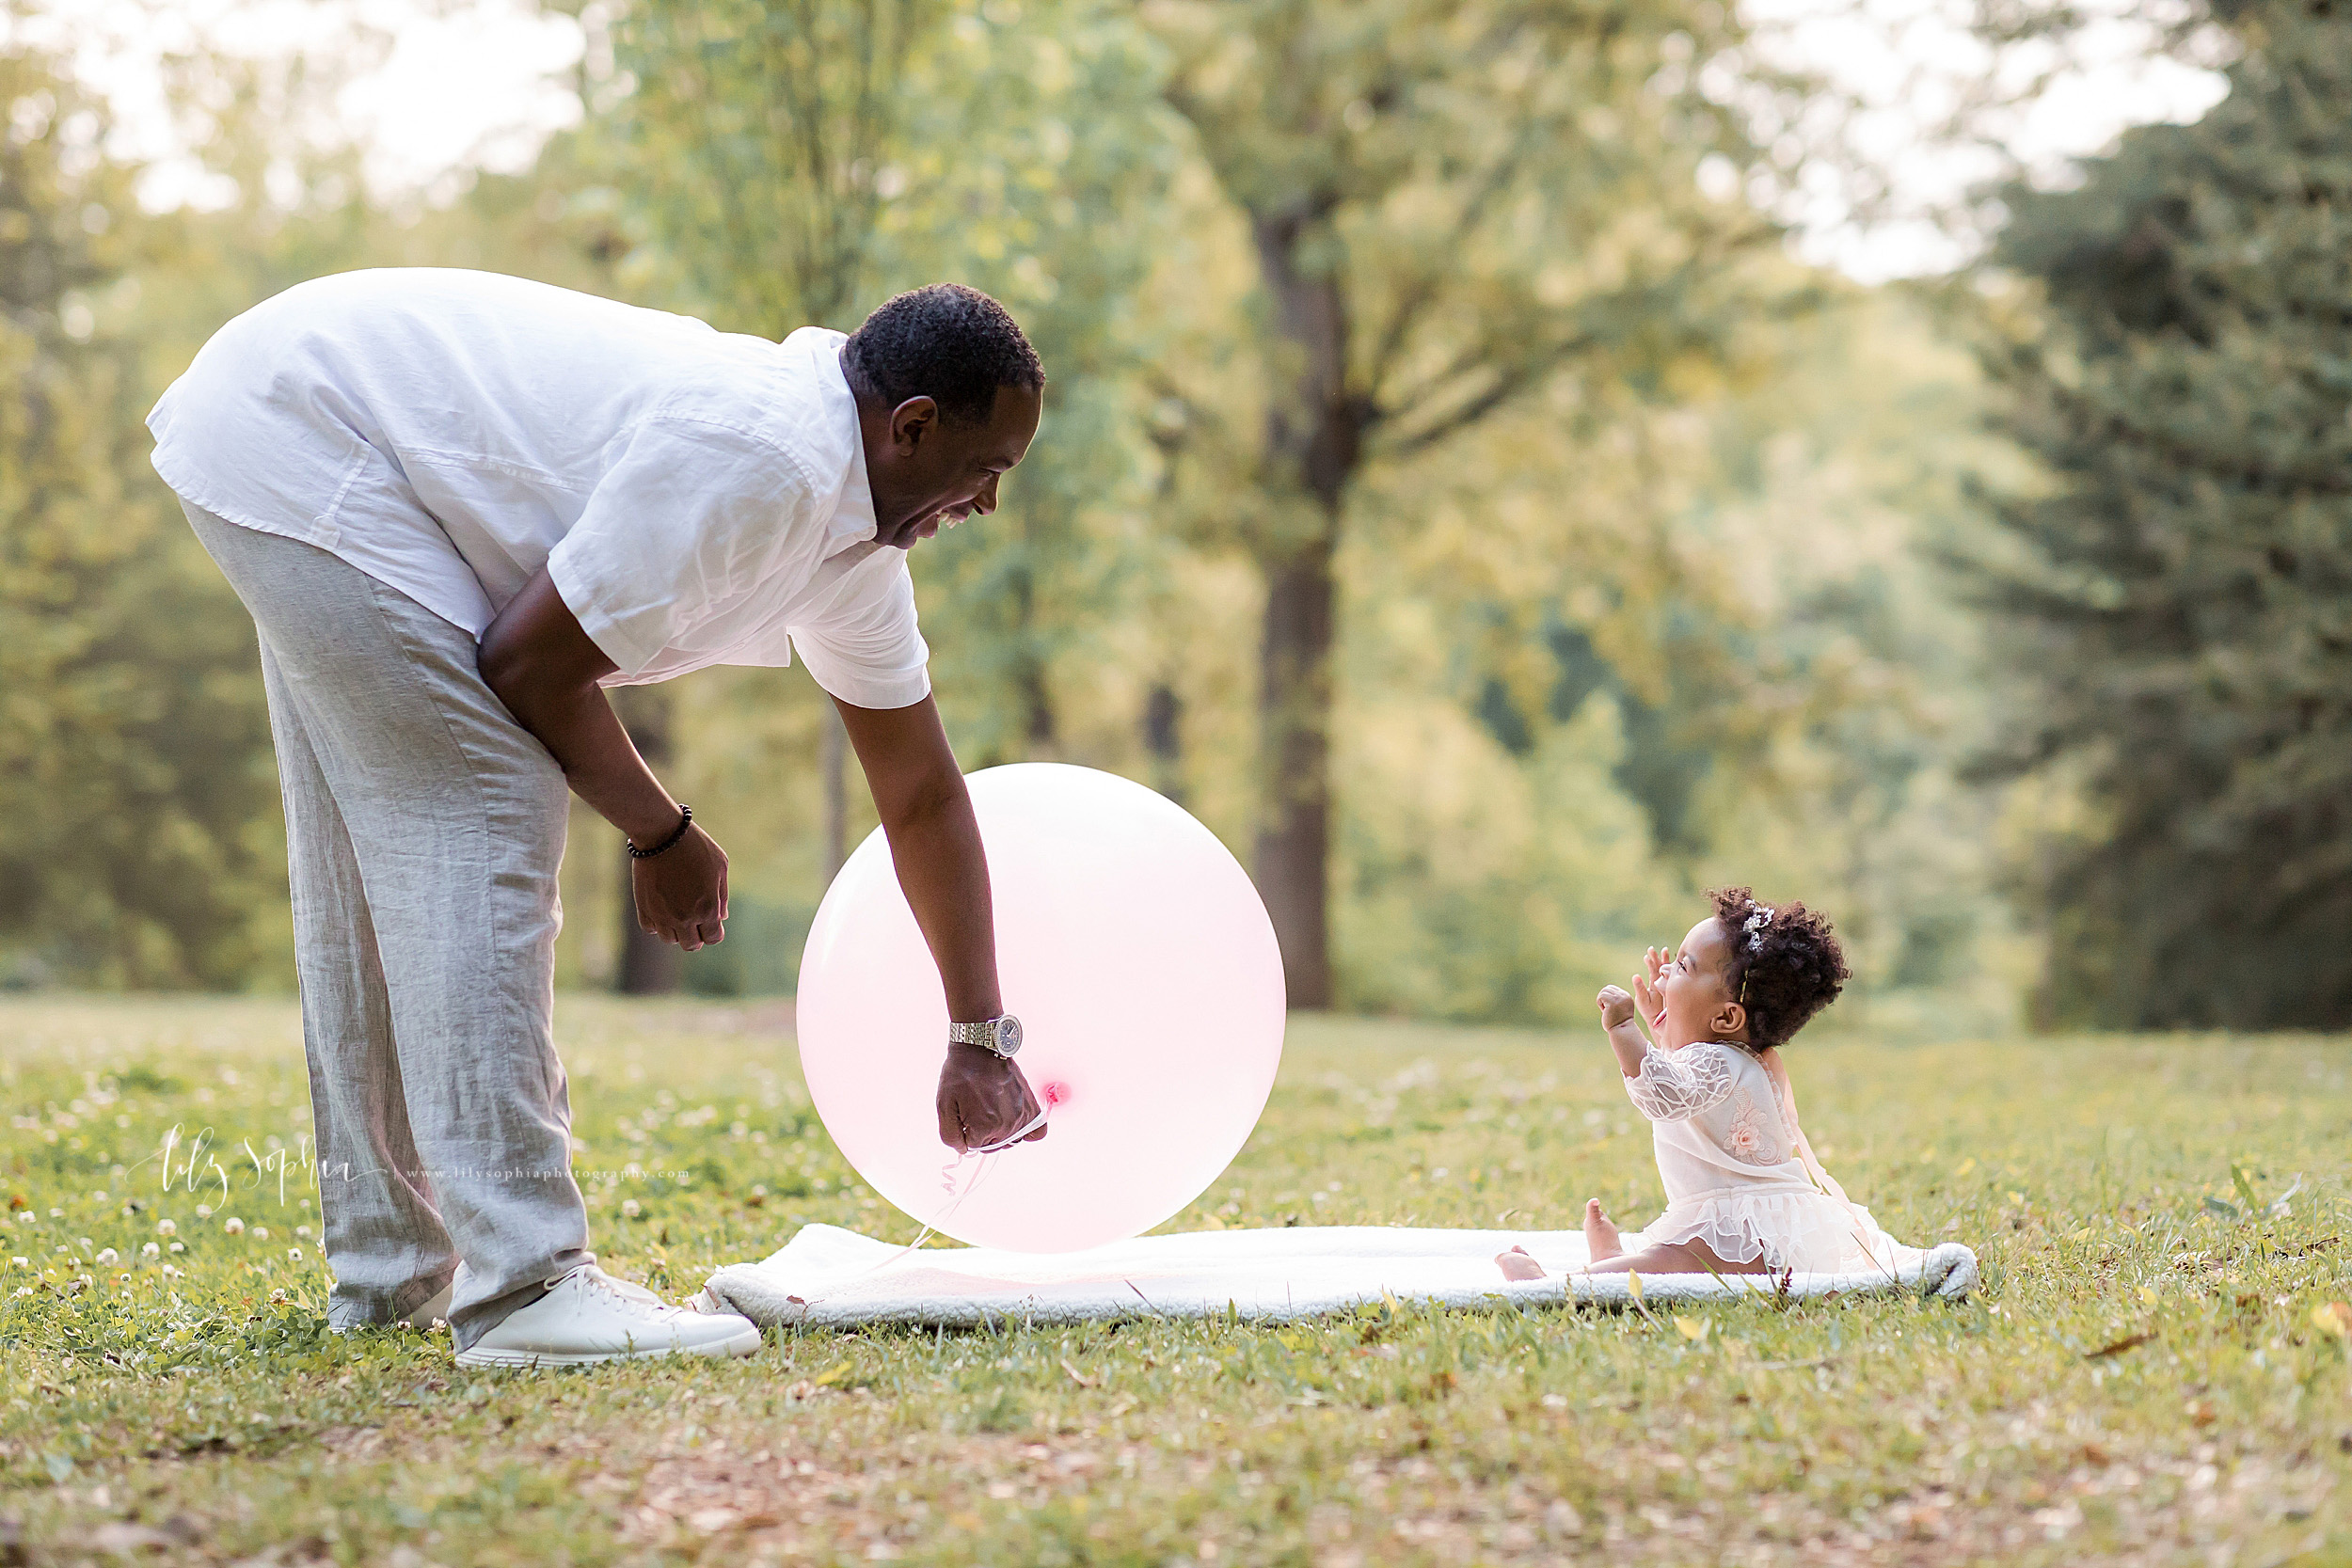 Image of an excited one year old African-American girl in a park with her dad. The little girl is sitting on a blanket at sunset with her arms up in the air and her mouth wide open. Her father is bending over the blanket and holding a large pink balloon for her first birthday.